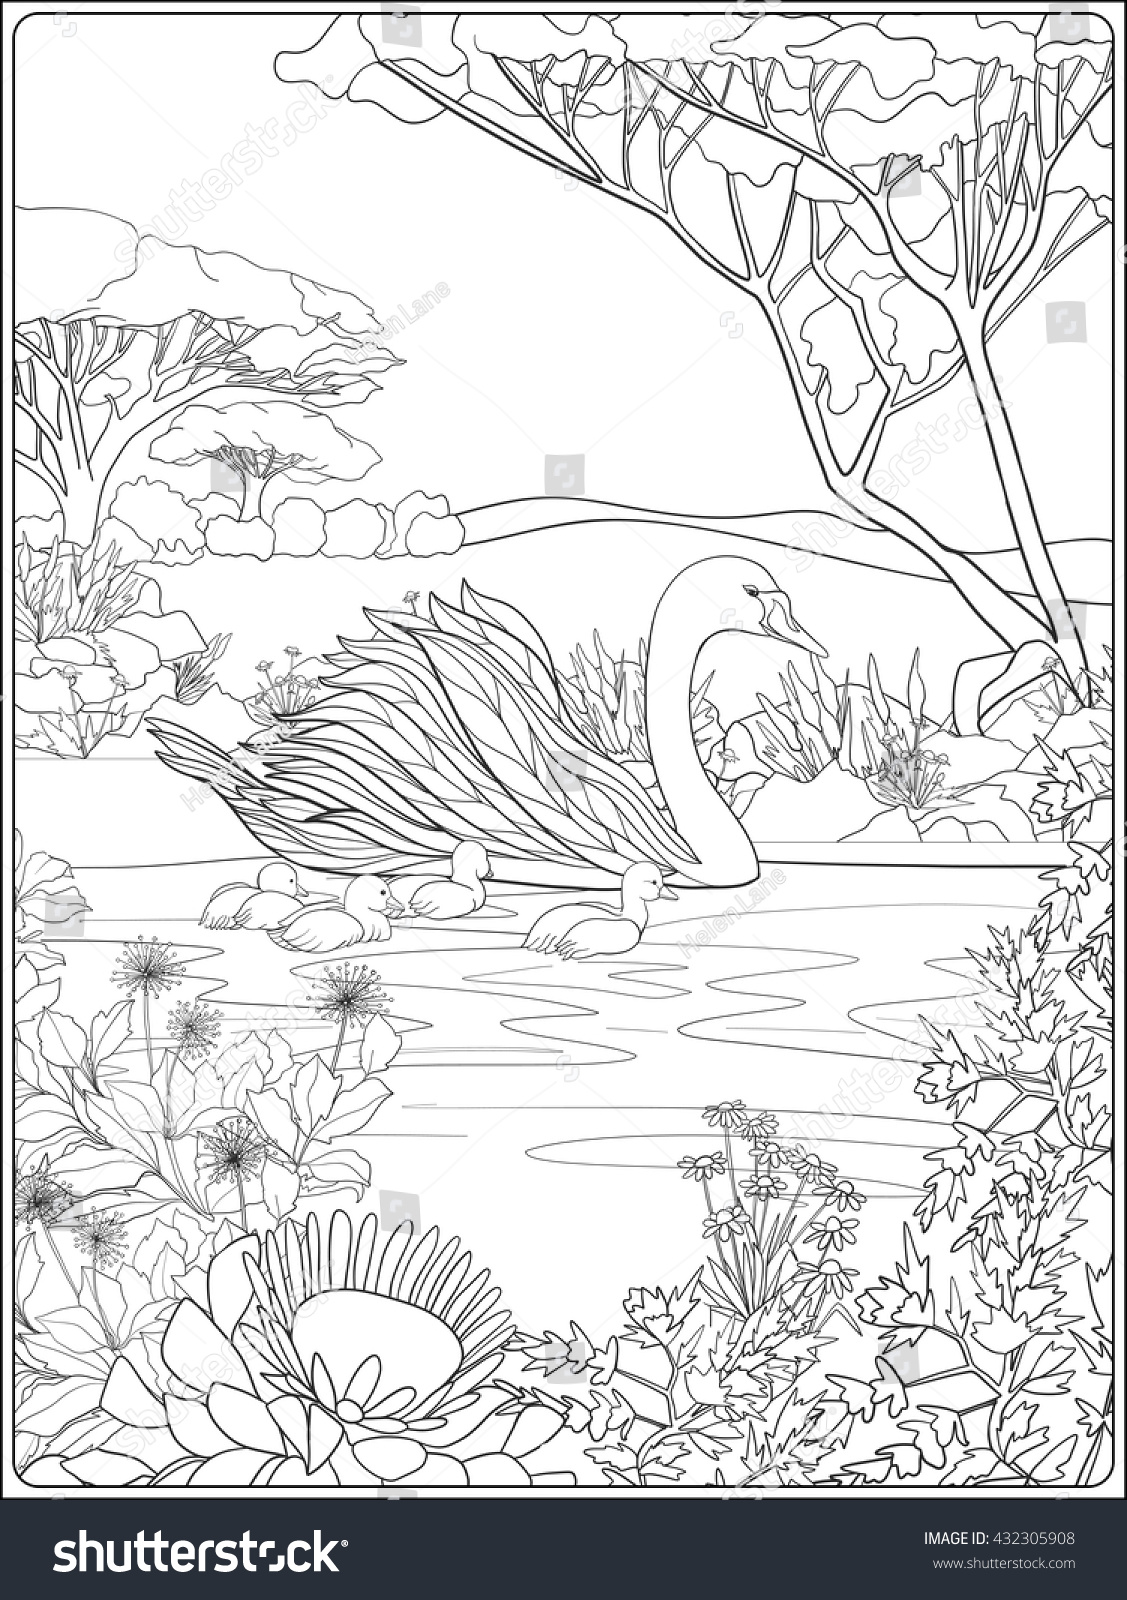 Coloring Book For Adult And Older Children Page With Lovely Mother Swan Her